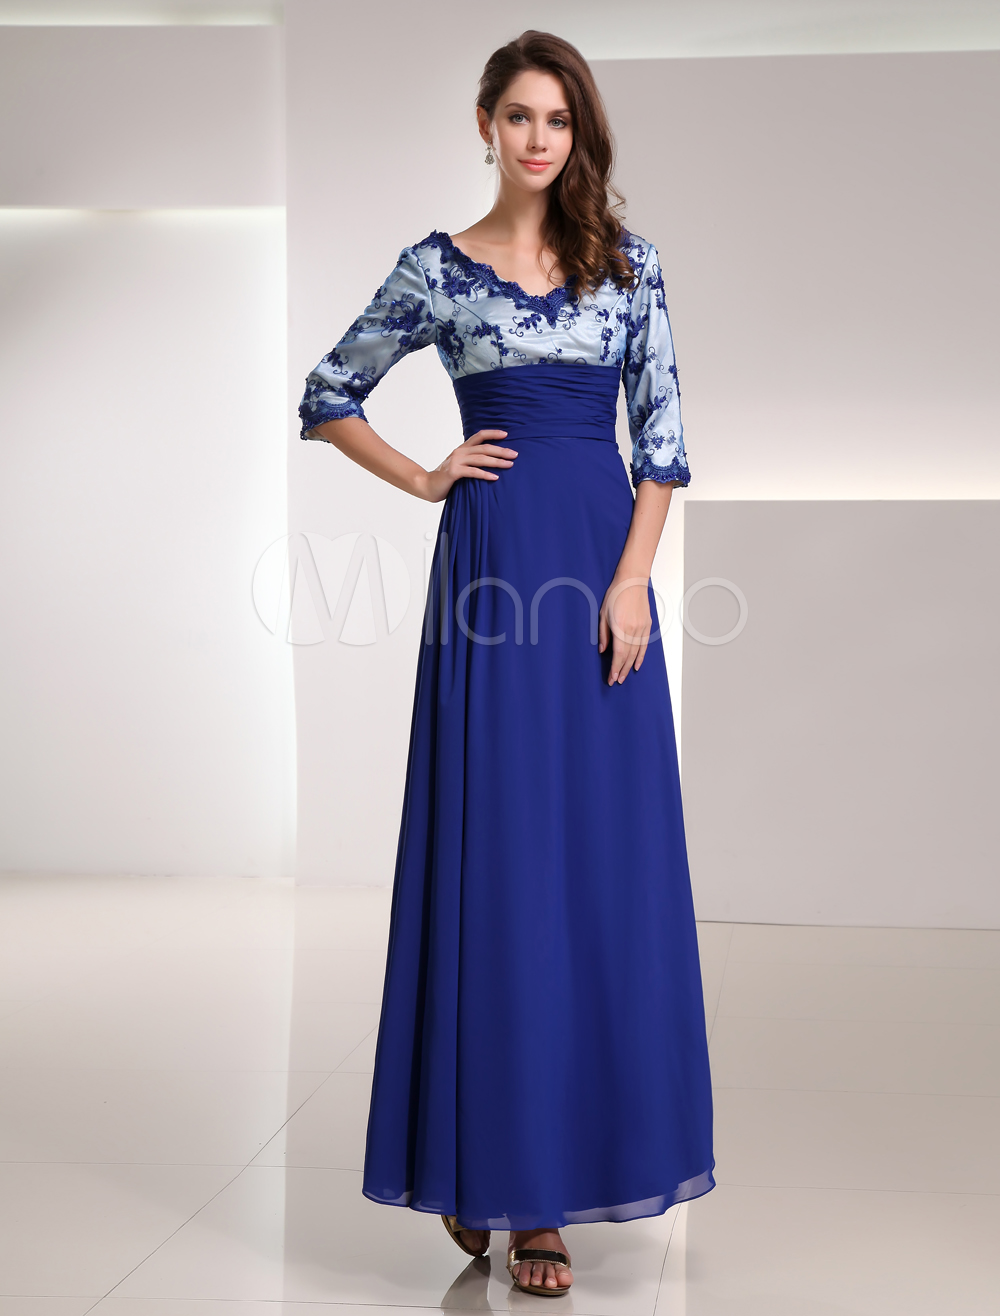 Buy Royal Blue Chiffon Lace V-neck Half Sleeve Mother of the Bride Dress for $120.59 in Milanoo store